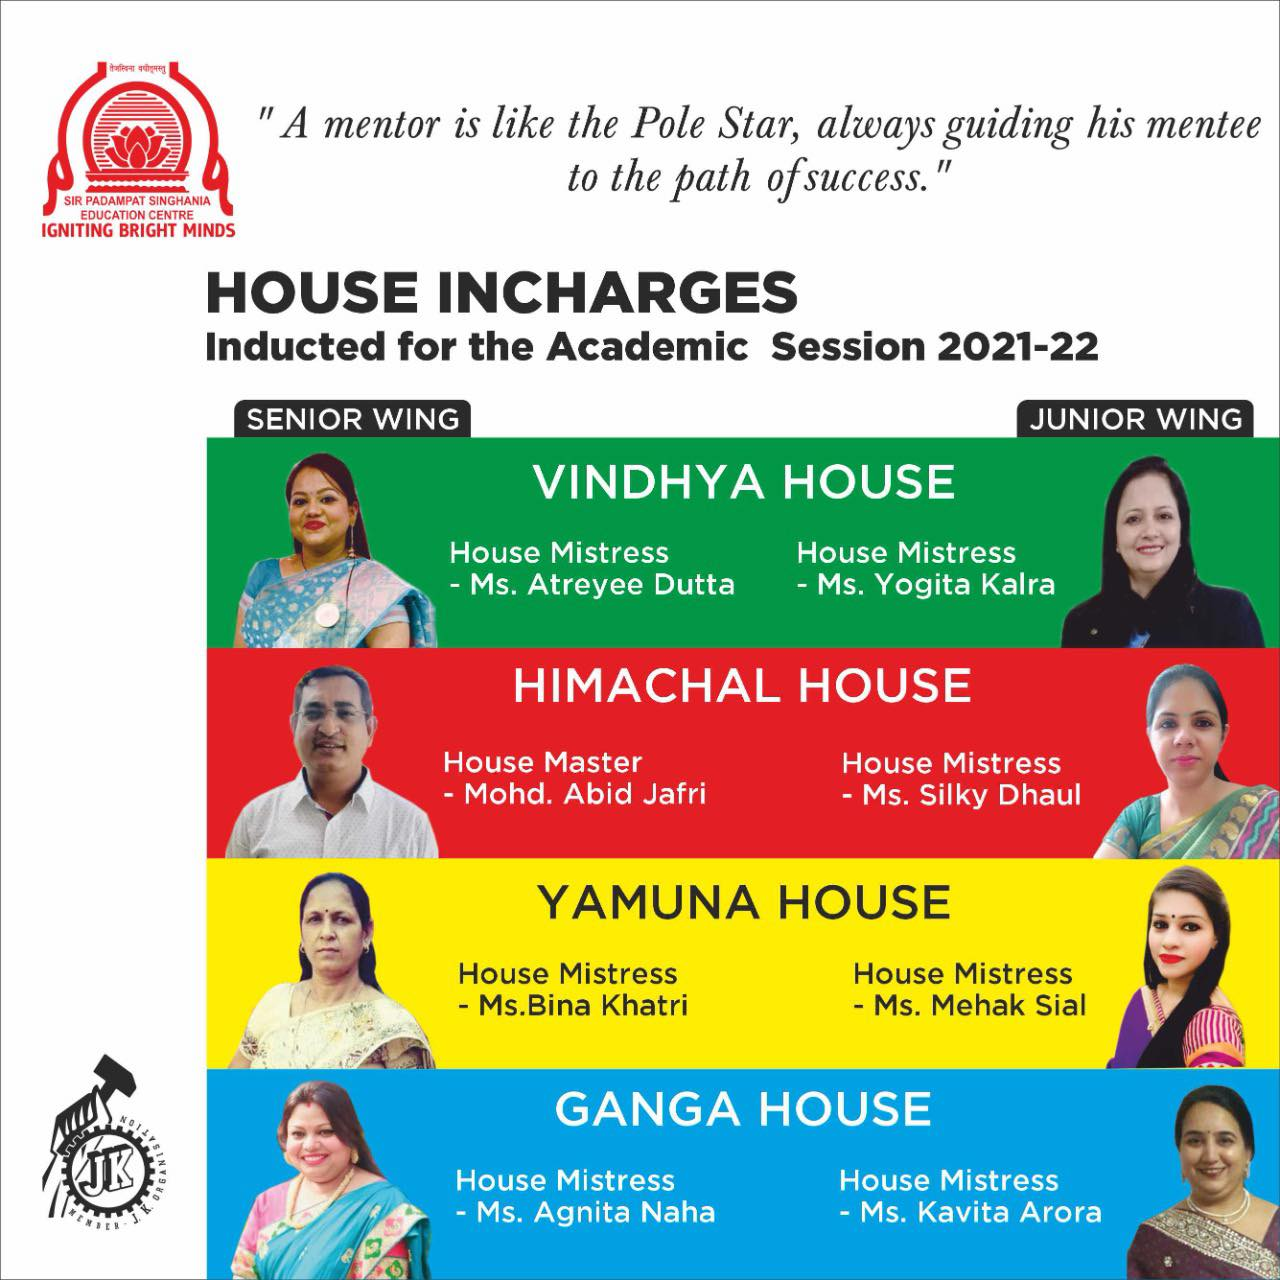 House Incharges